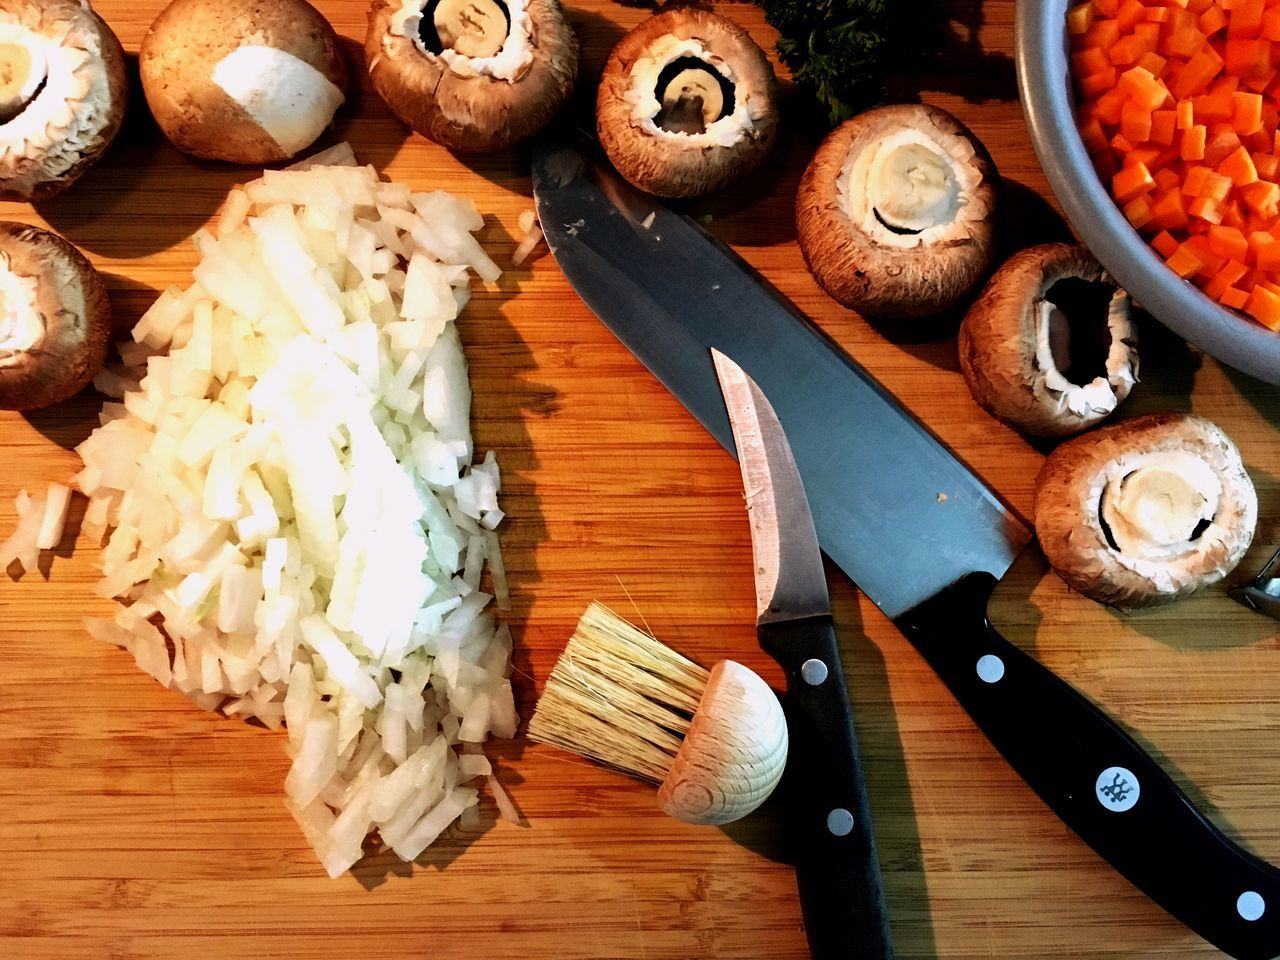 Cutting Board Food No People Food And Drink Table Freshness Indoors  Healthy Eating Soulfood Mushrooms Onions Carottes Cooking Fresh Products First Eyeem Photo Cooking Can Be Art